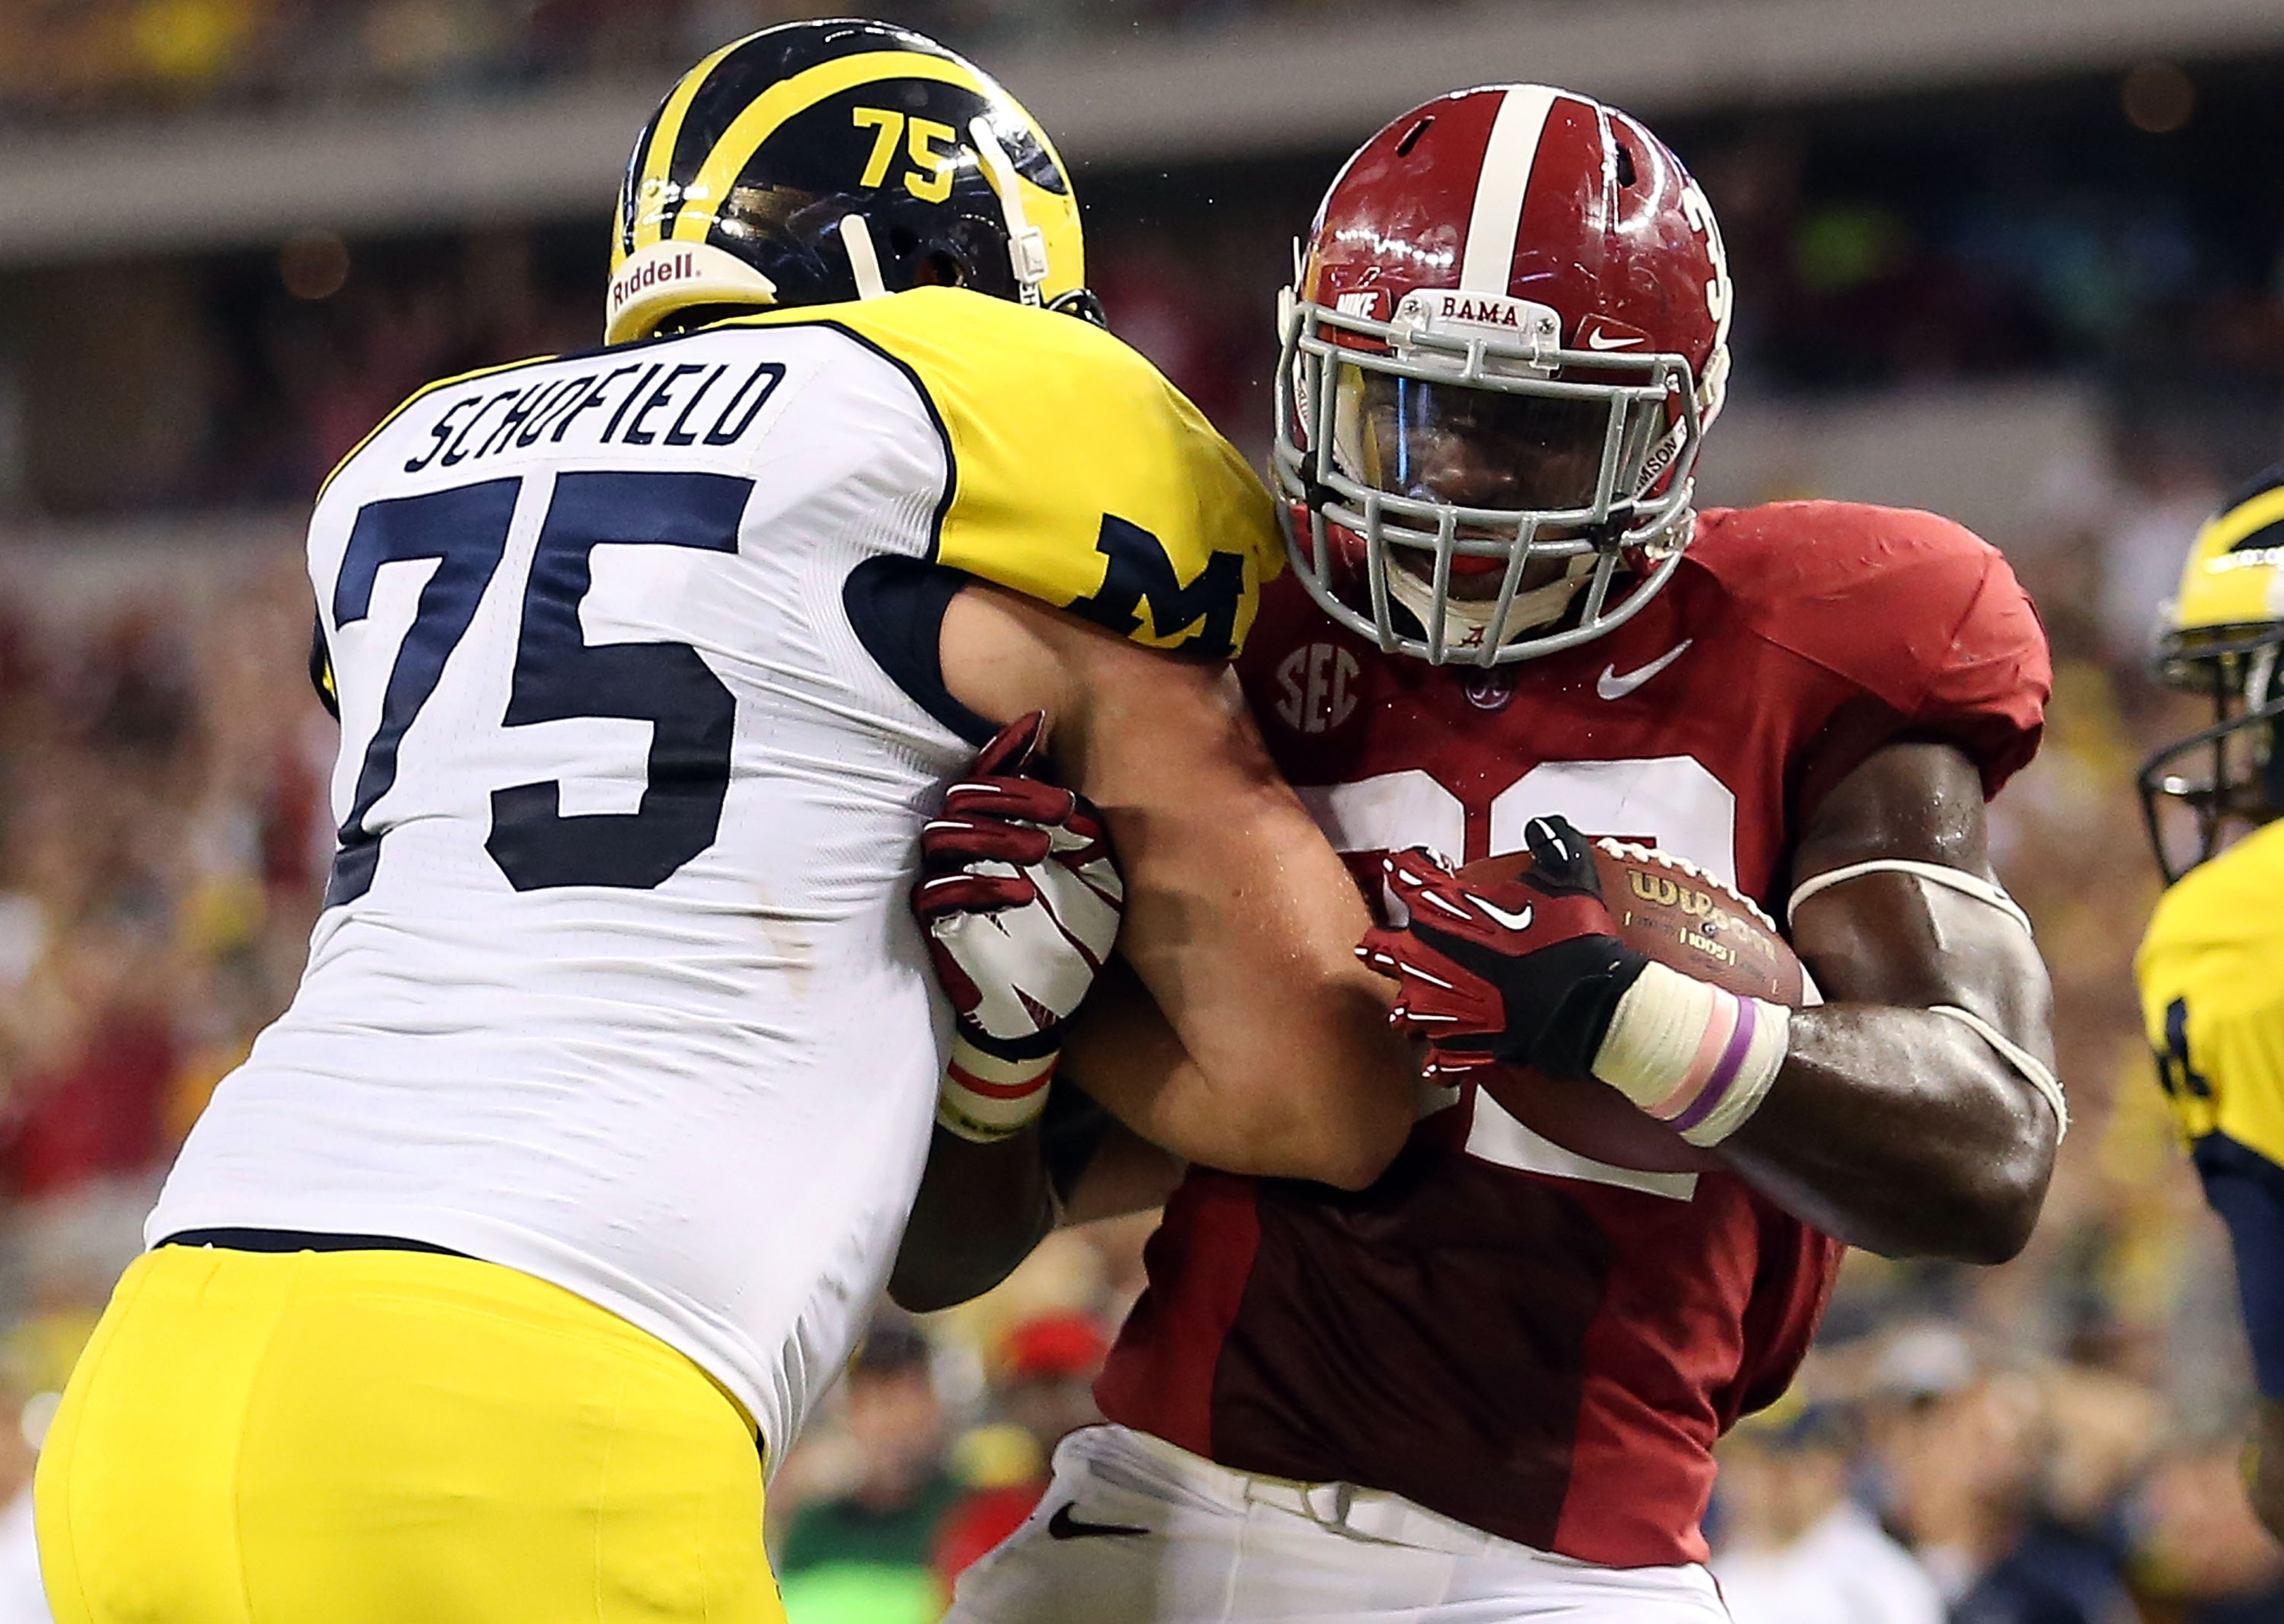 This is the best photo of Michael Schofield, where the offensive lineman is trying to tackle Alabama linebacker C.J. Mosley.